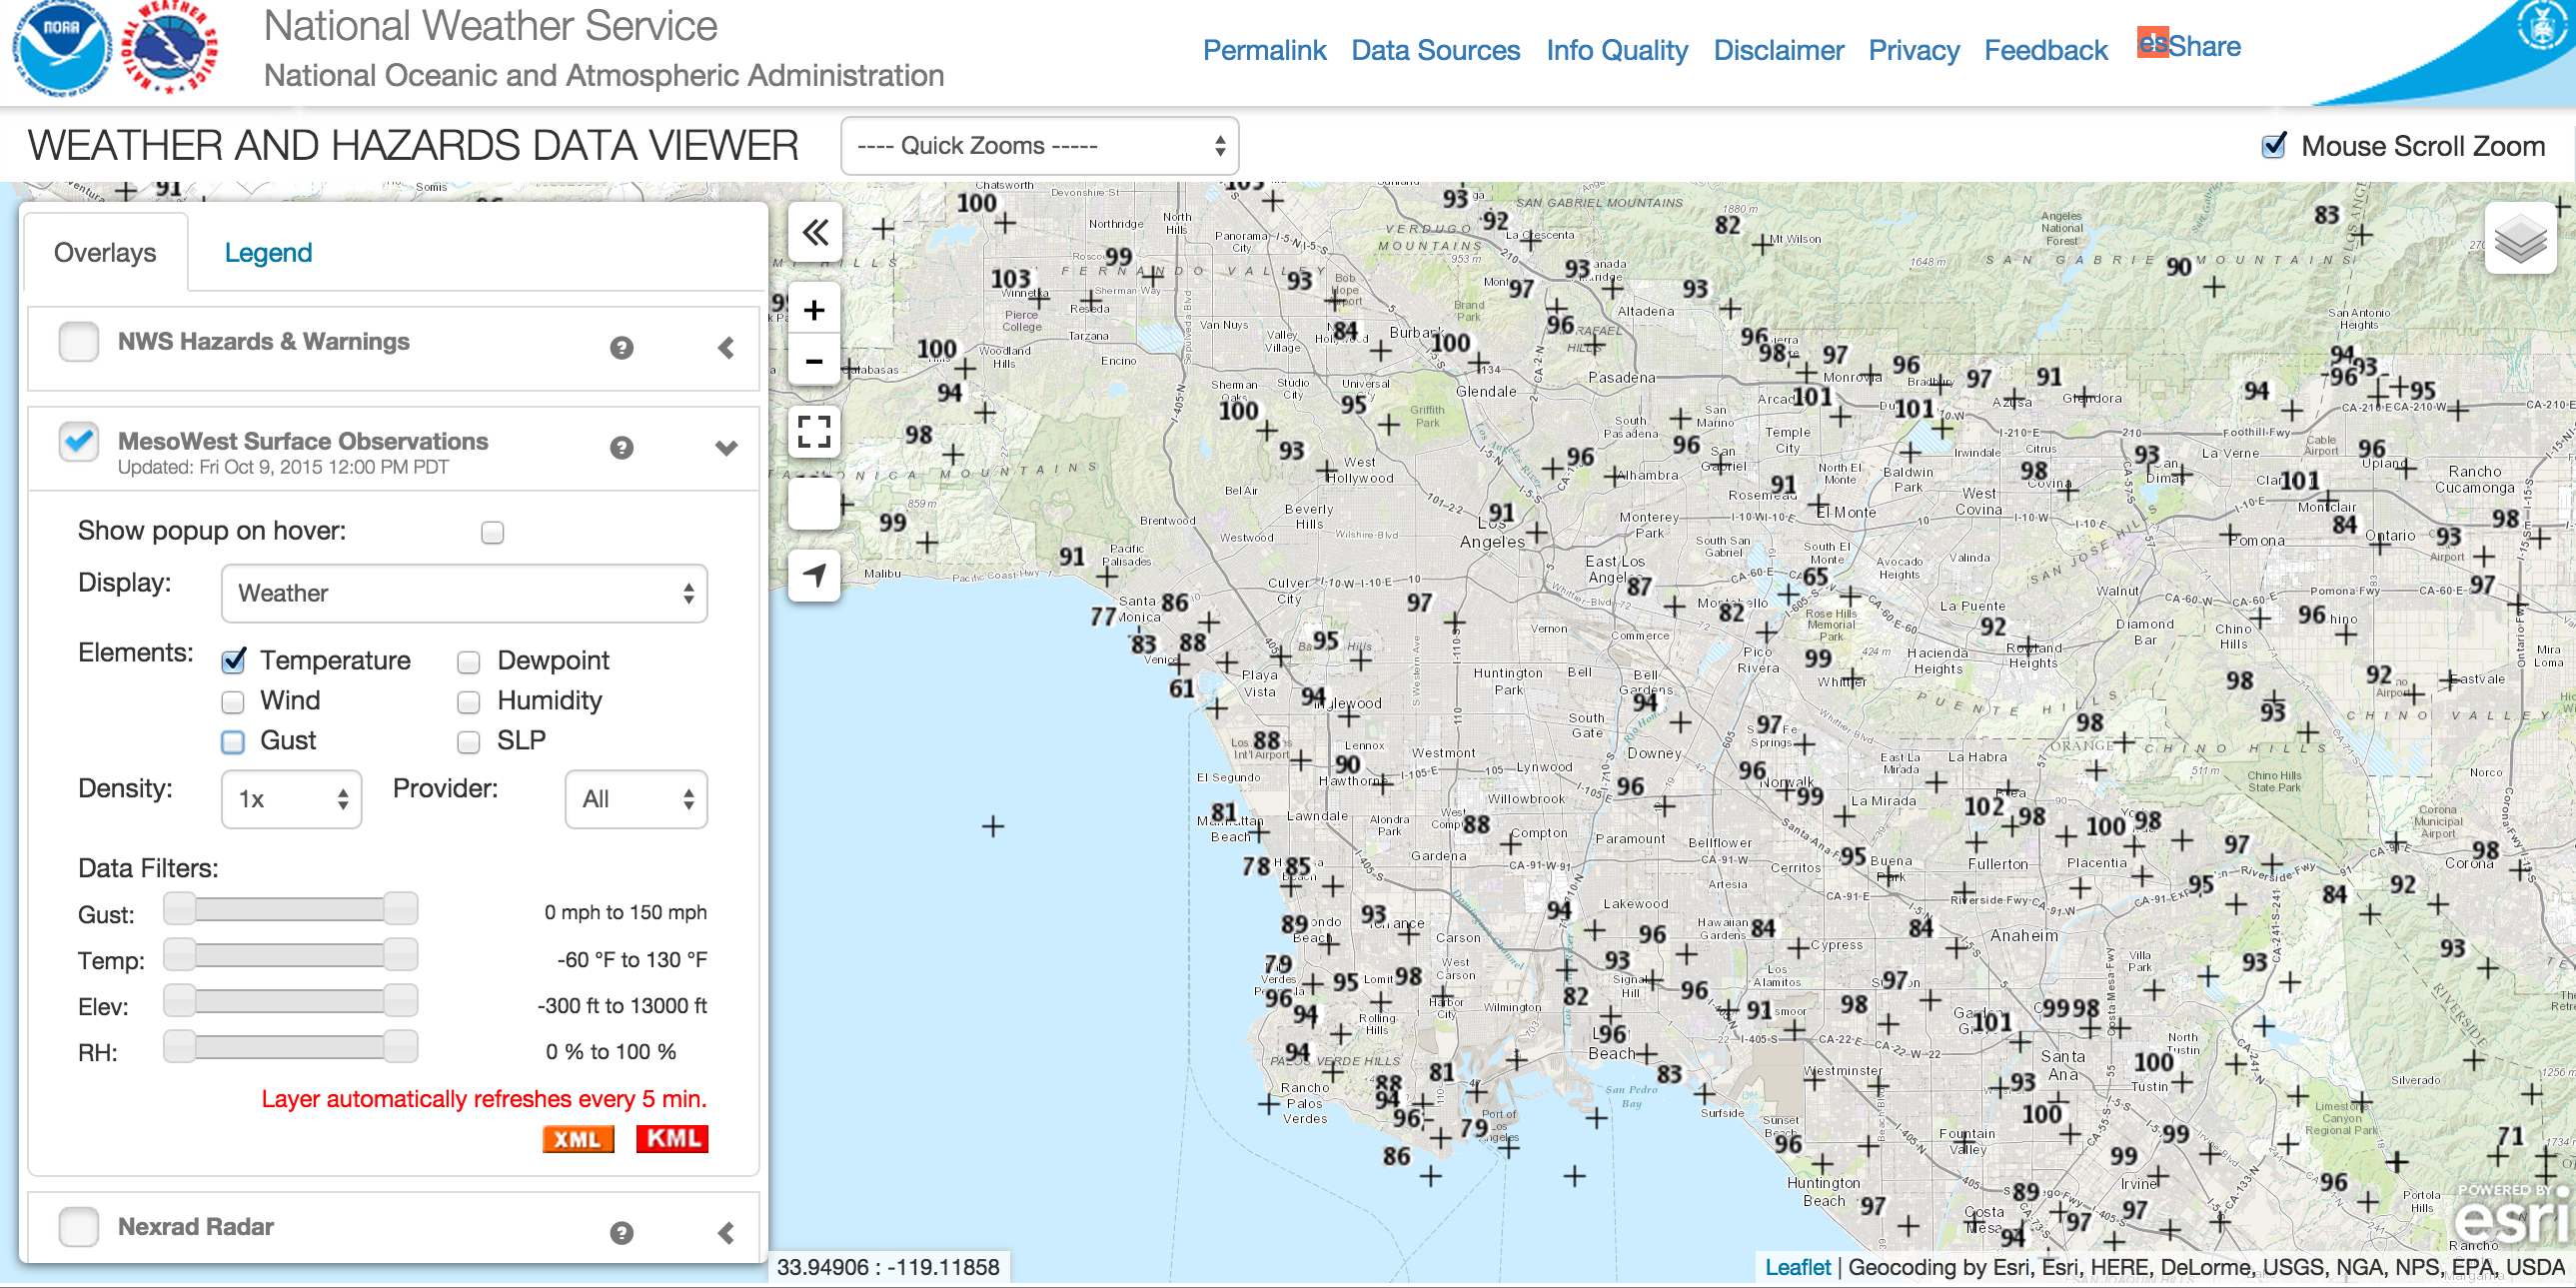 Temperatures across Los Angeles County at noon today. Source: National Weather Service. Click to see larger.